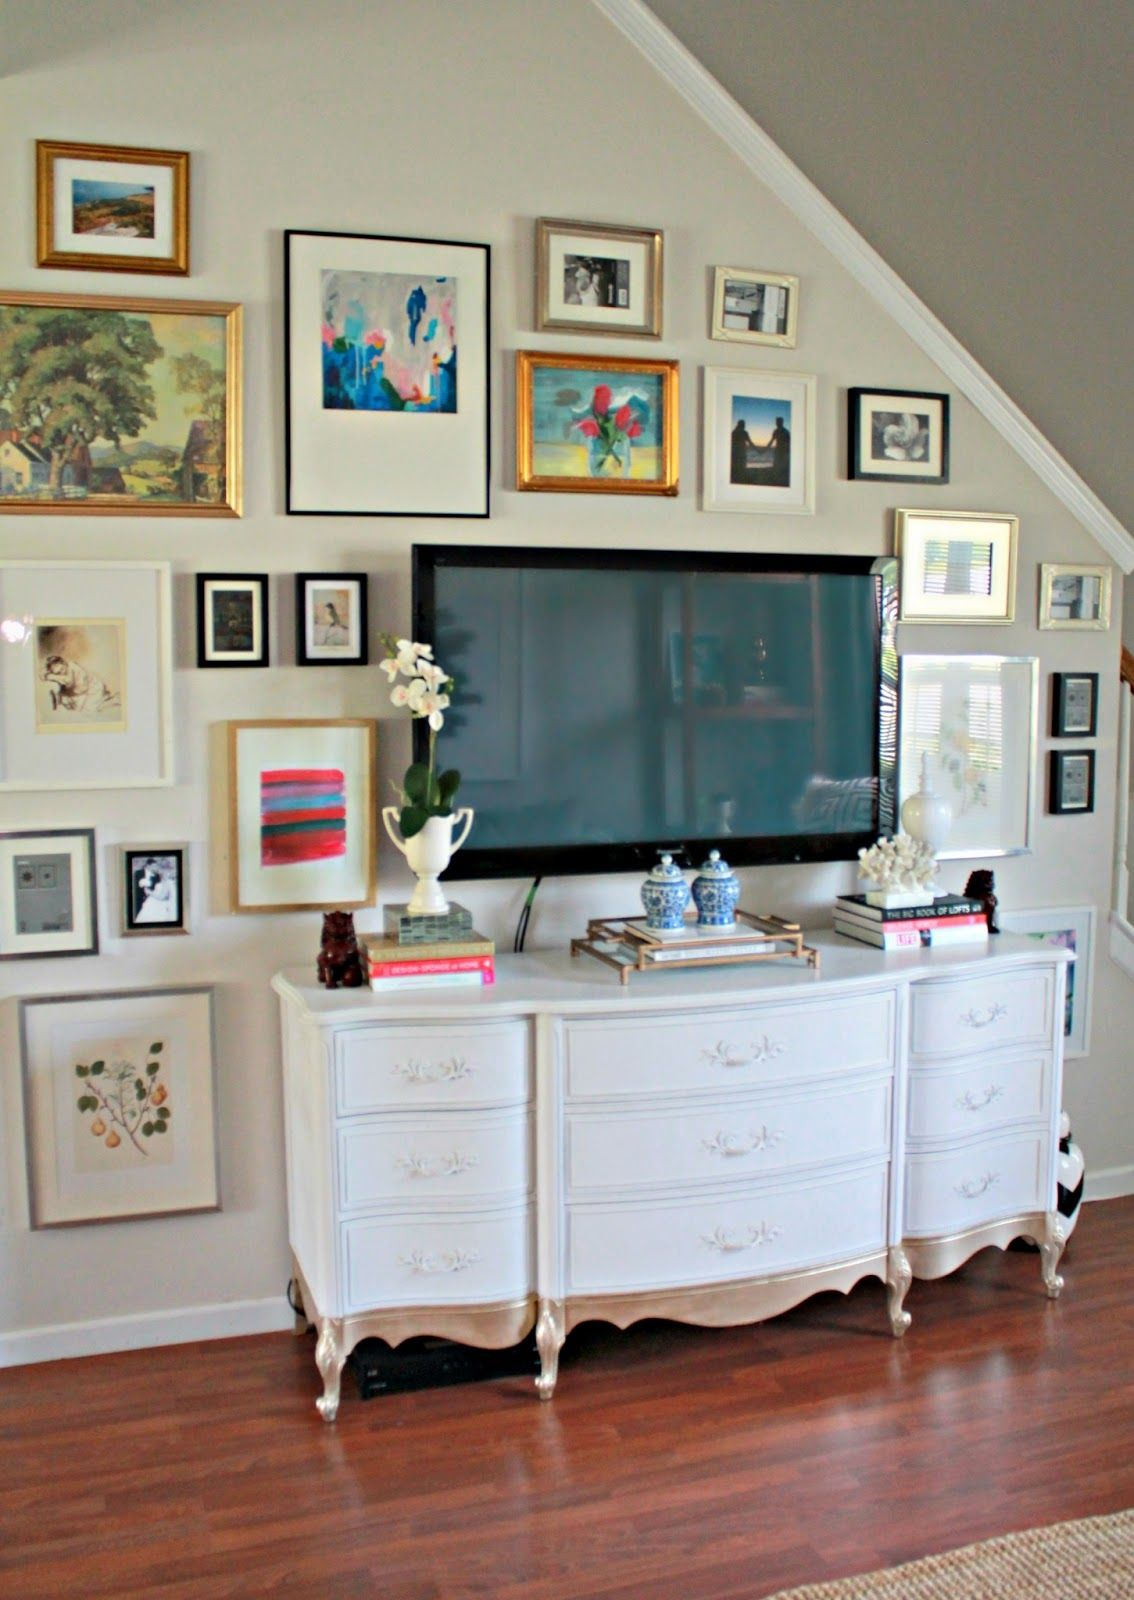 A few weeks ago, I posted aboutmaking your TV blend in with a gallery wall. I had been collecting frames from IKEA, yard sales, Goodwill, auctions, and estate sales, knowing that I wanted to create a gallery around my TV for some time now. Here is a beautiful picture of what this wall looked like...Continue Reading